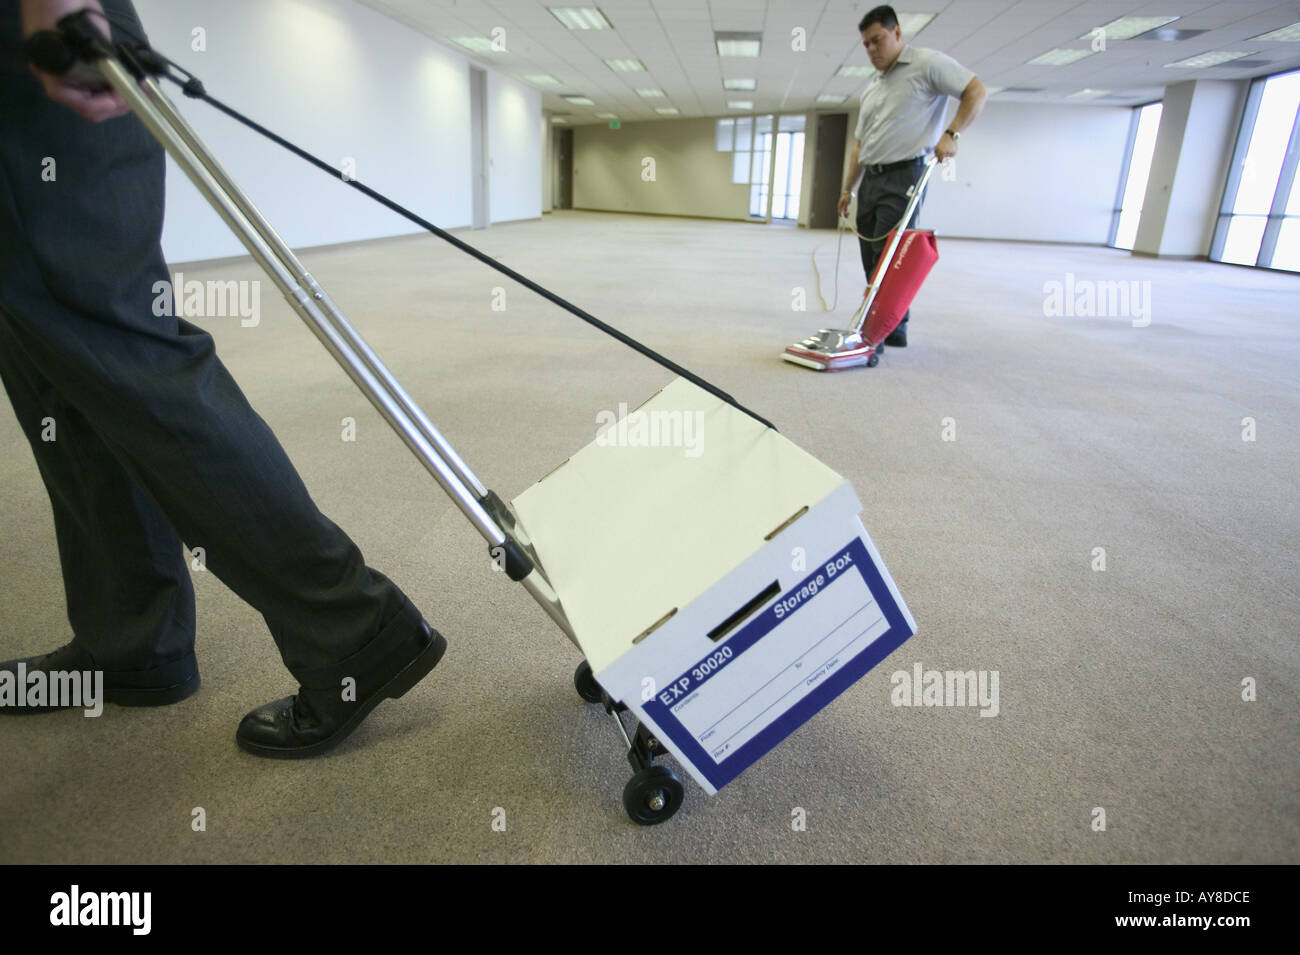 Young office worker moving into or moving out of vacant office space in hi rise office building while janitor vacummes - Stock Image